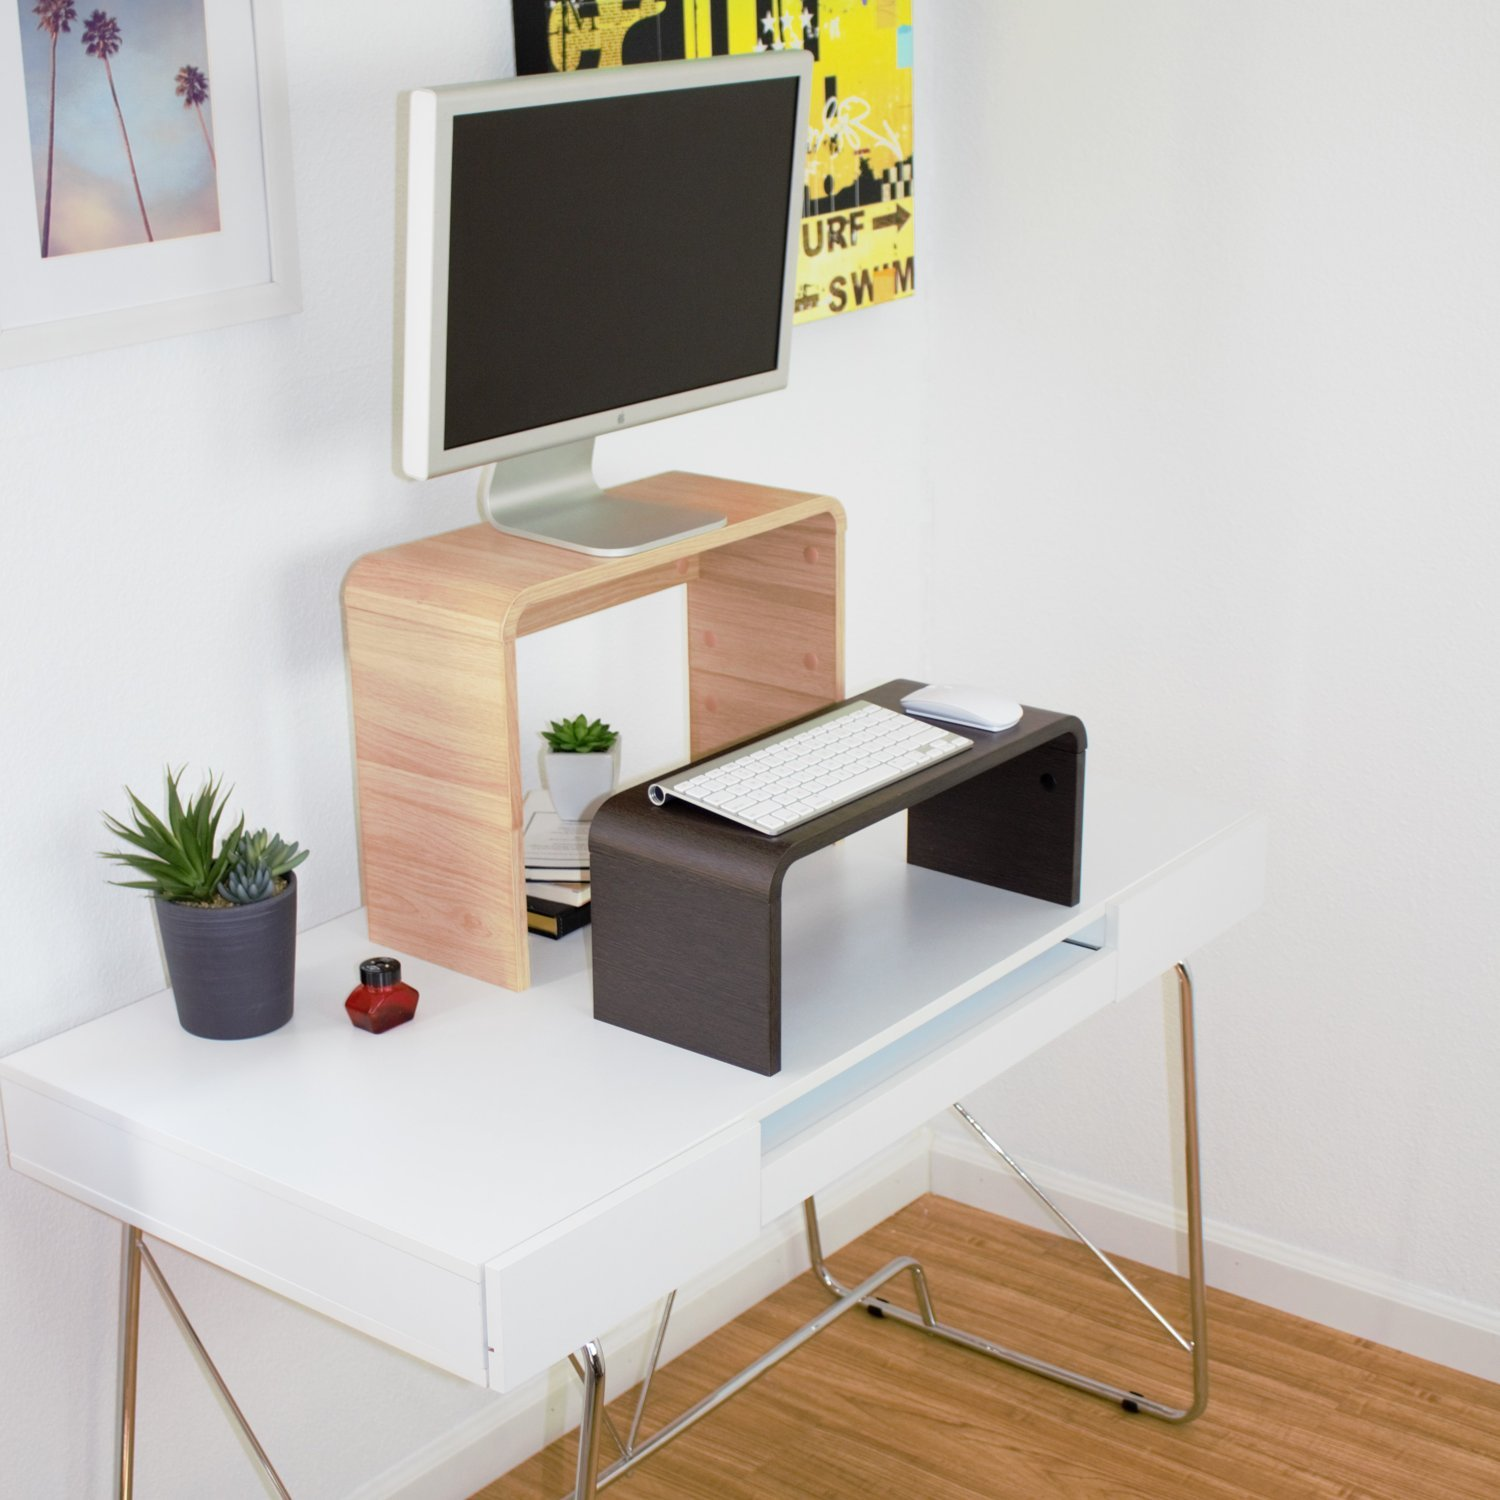 GORGEOUS Versatile, Modern, Adjustable Stand! Perfect for Laptop Stand for Standing Desk, Monitor Riser, Keyboard or Display. Great for Home or Office, Gaming, TV, Printer, Trade Show Display & more! by Stand Up Desk Pro